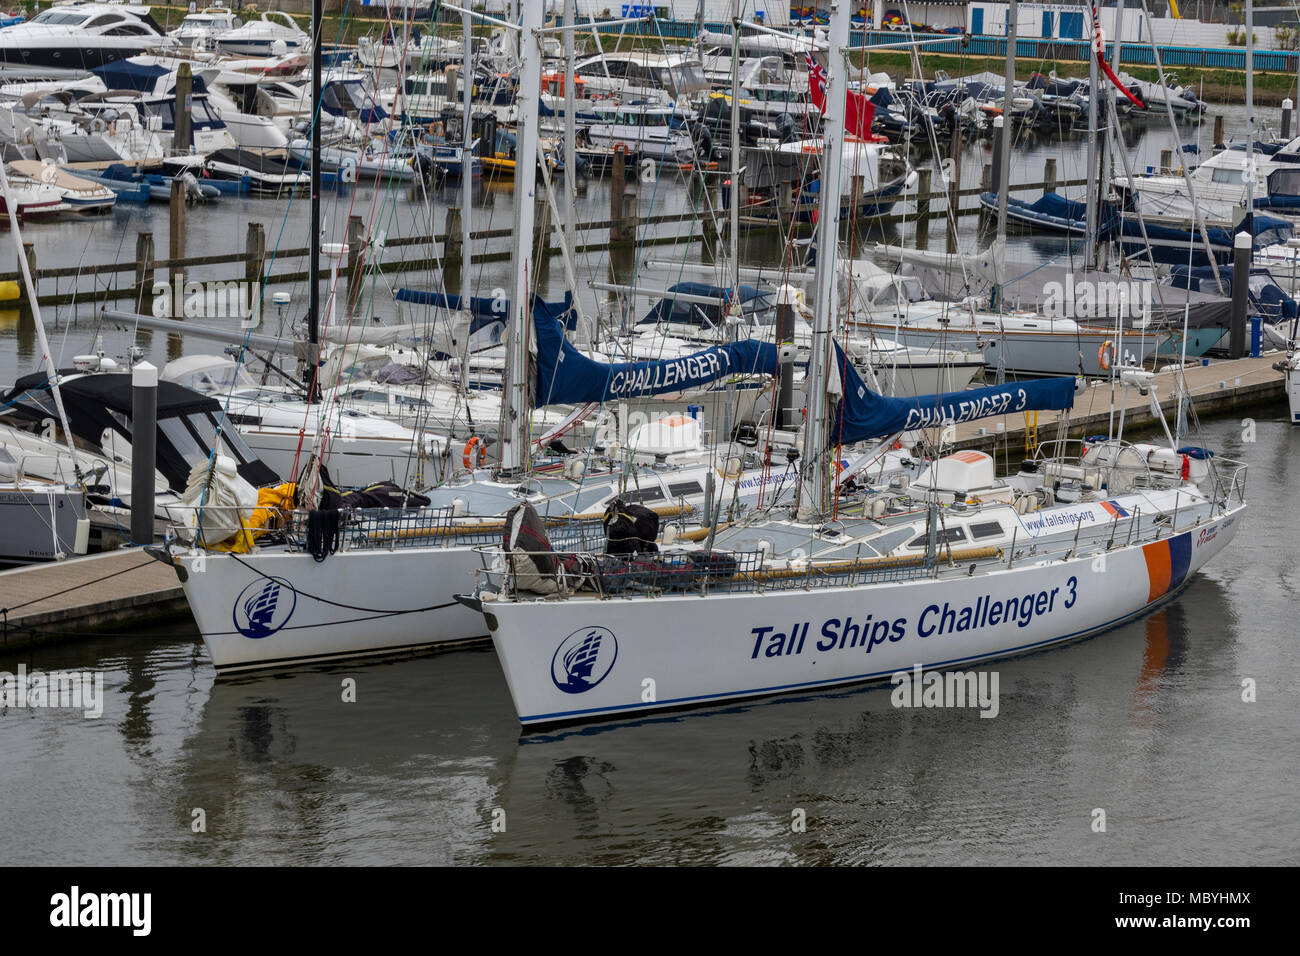 tall ships challenge yachts alongside at the marina or harbour at Lymington river in the new forest. Sailing adventures and instruction on large boats - Stock Image